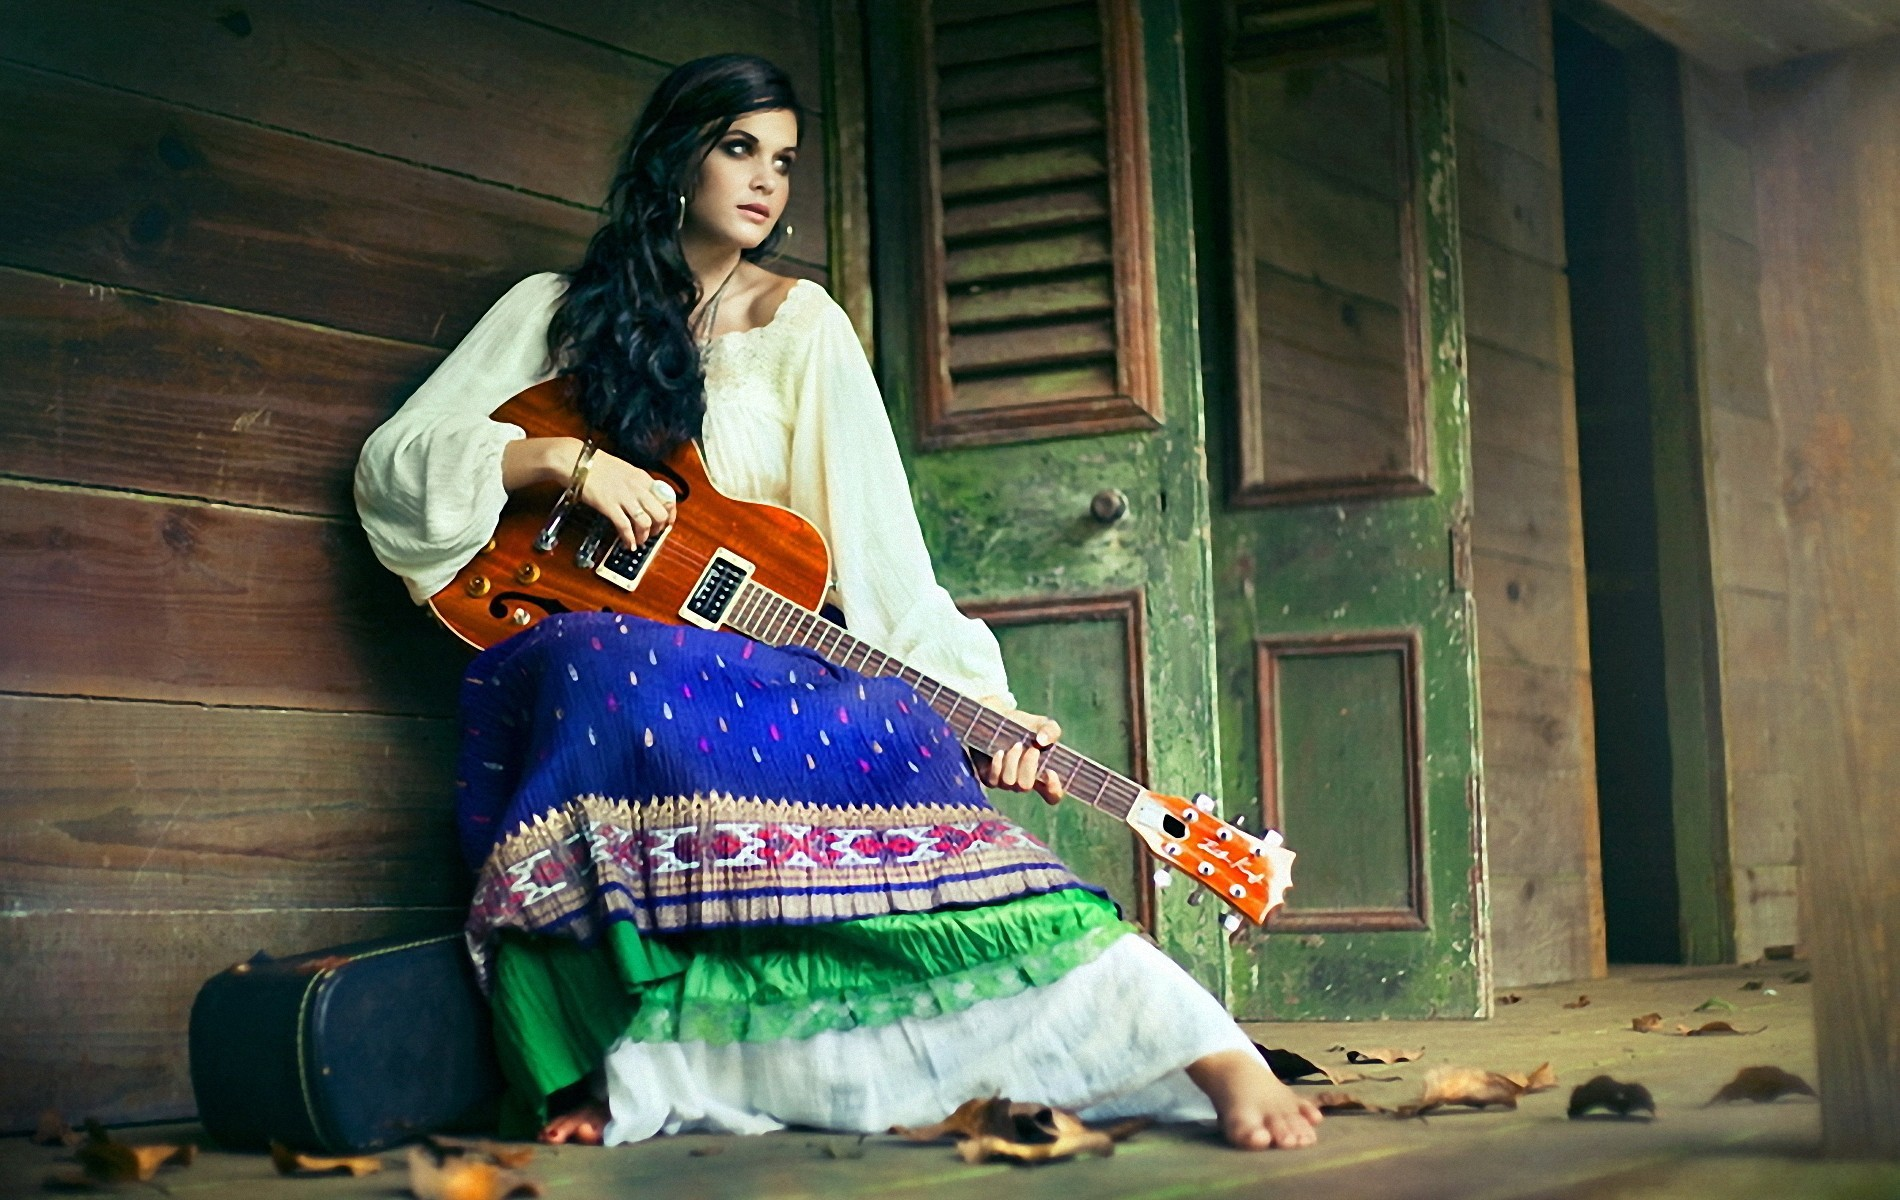 guitars gypsy woman lonely